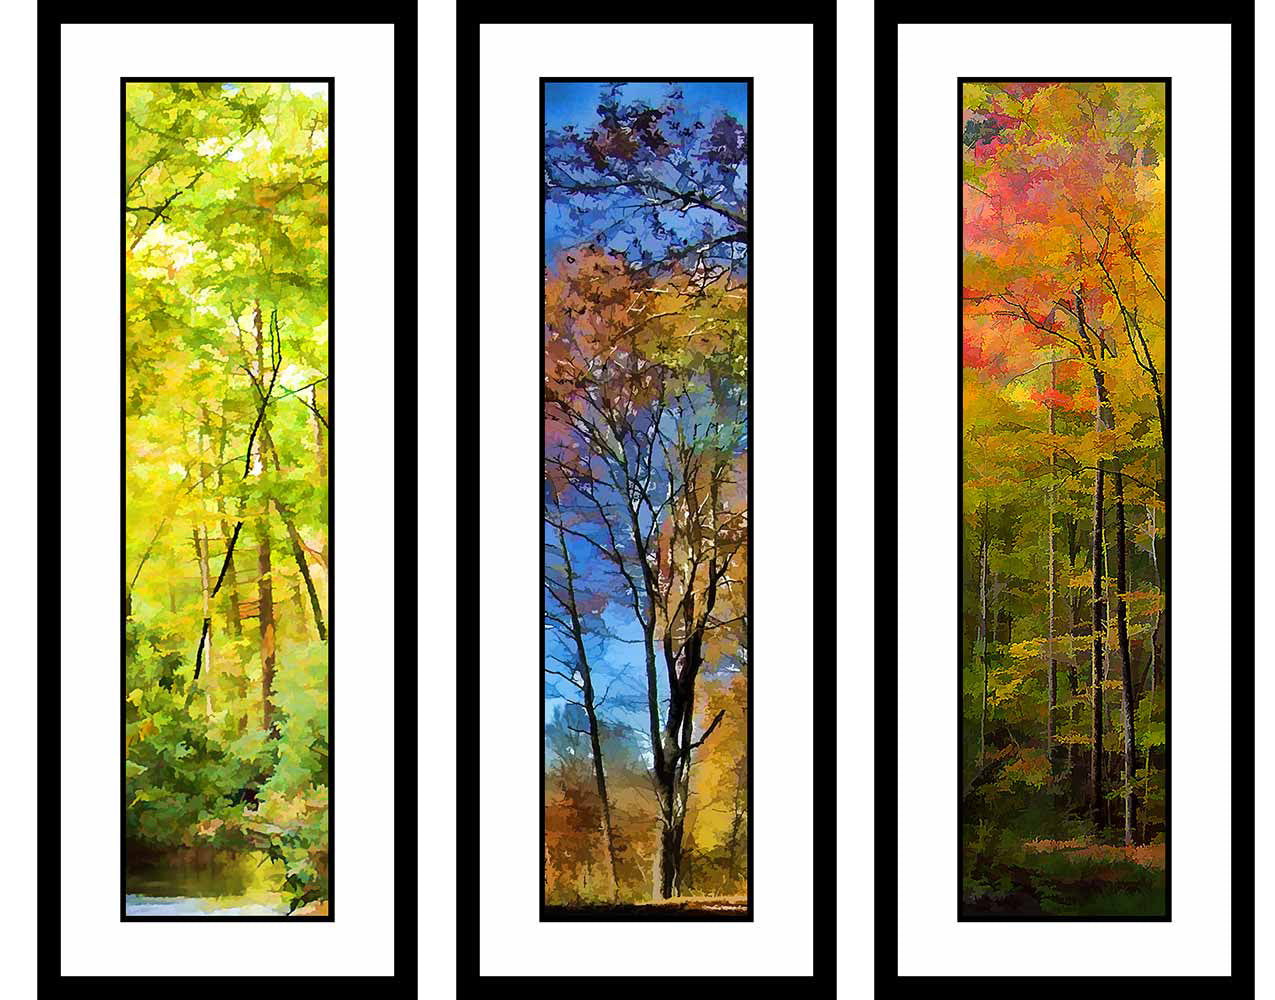 Abstract Fall grouping by Alison Thomas of Serenity Scenes Photography and Digital Art.